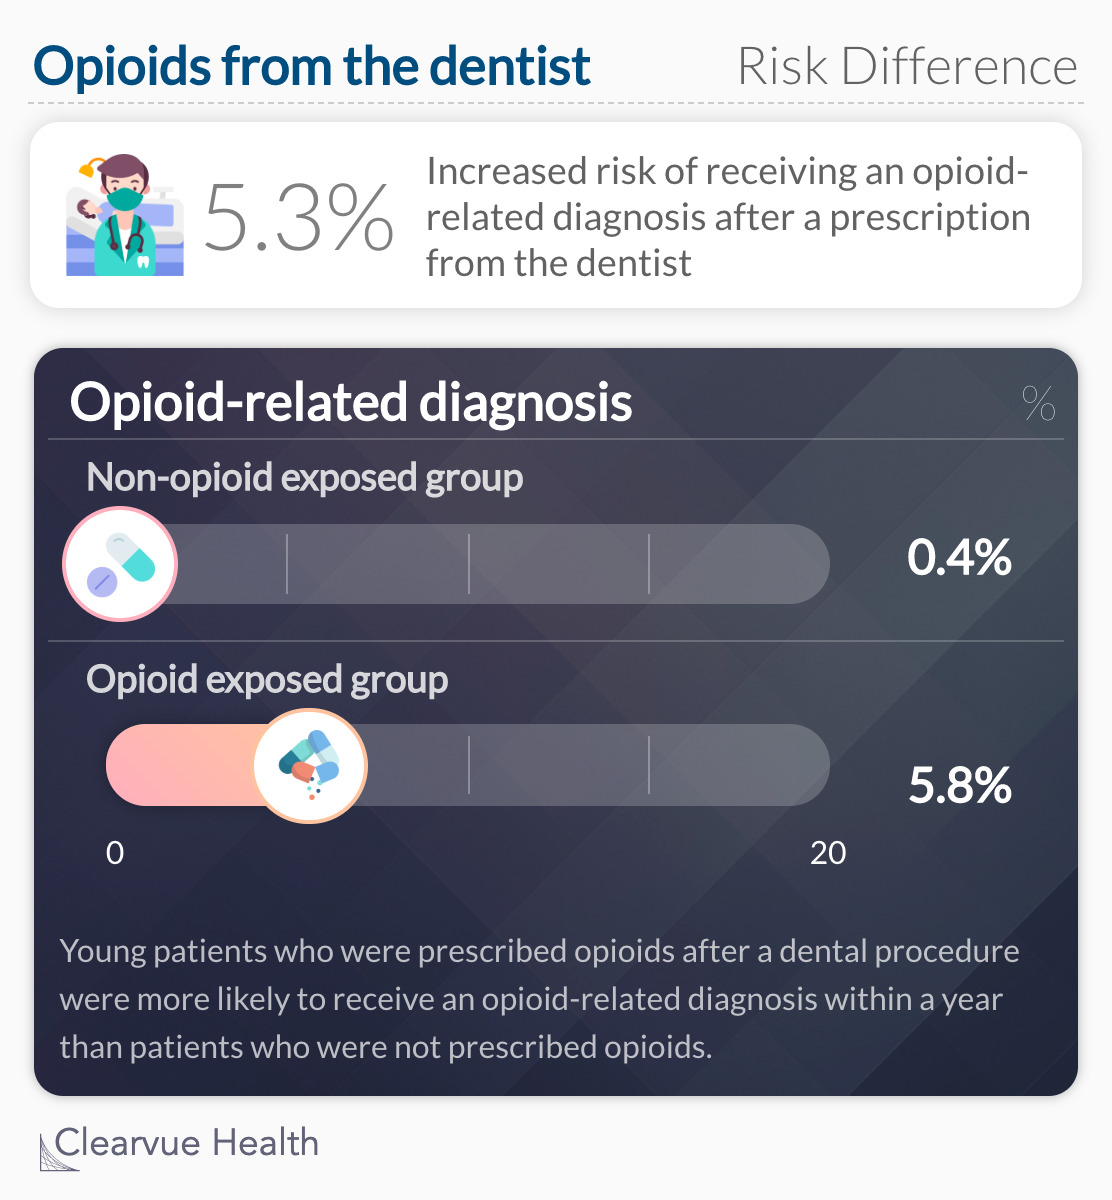 Increased risk of receiving an opioid-related diagnosis after a prescription from the dentist